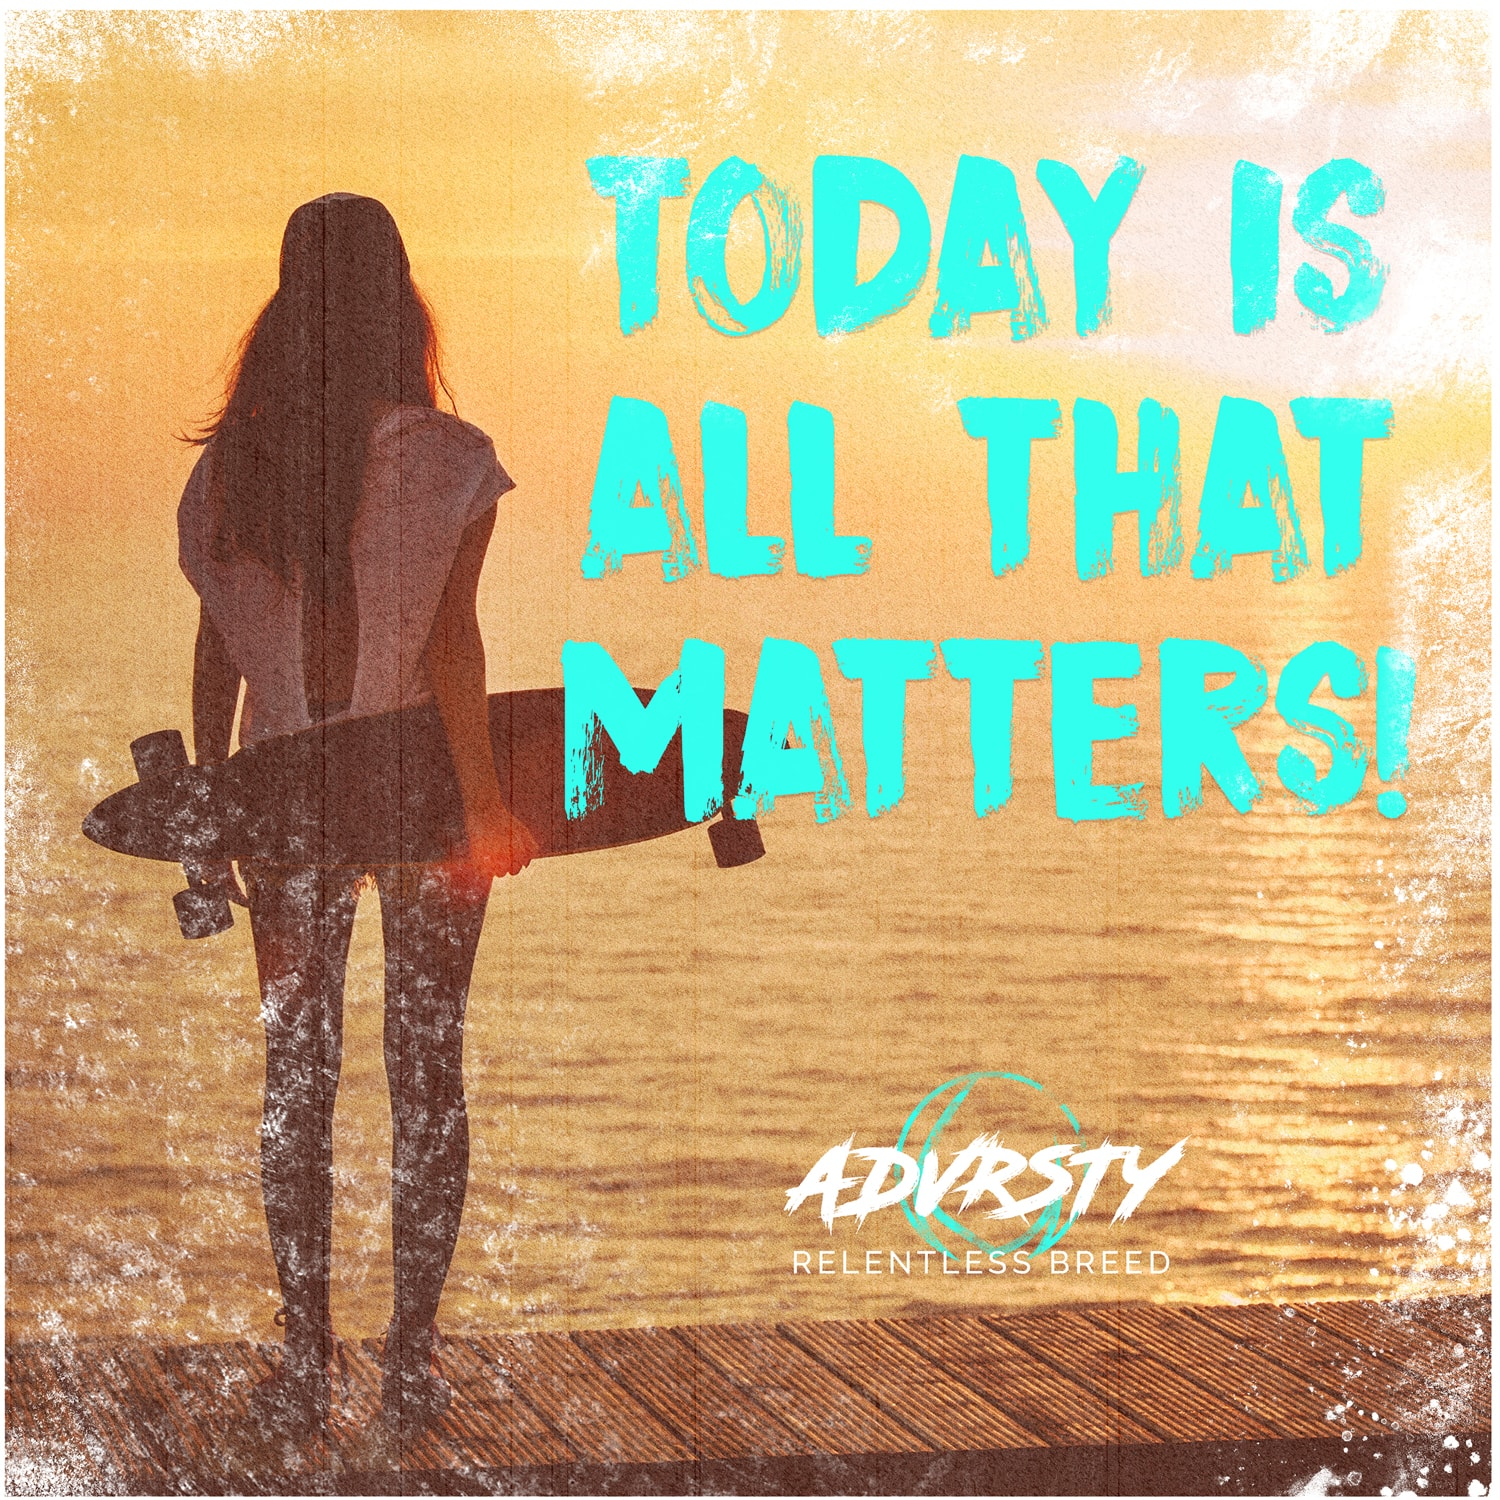 Today is All that Matters Advrsty Social Media Post Design